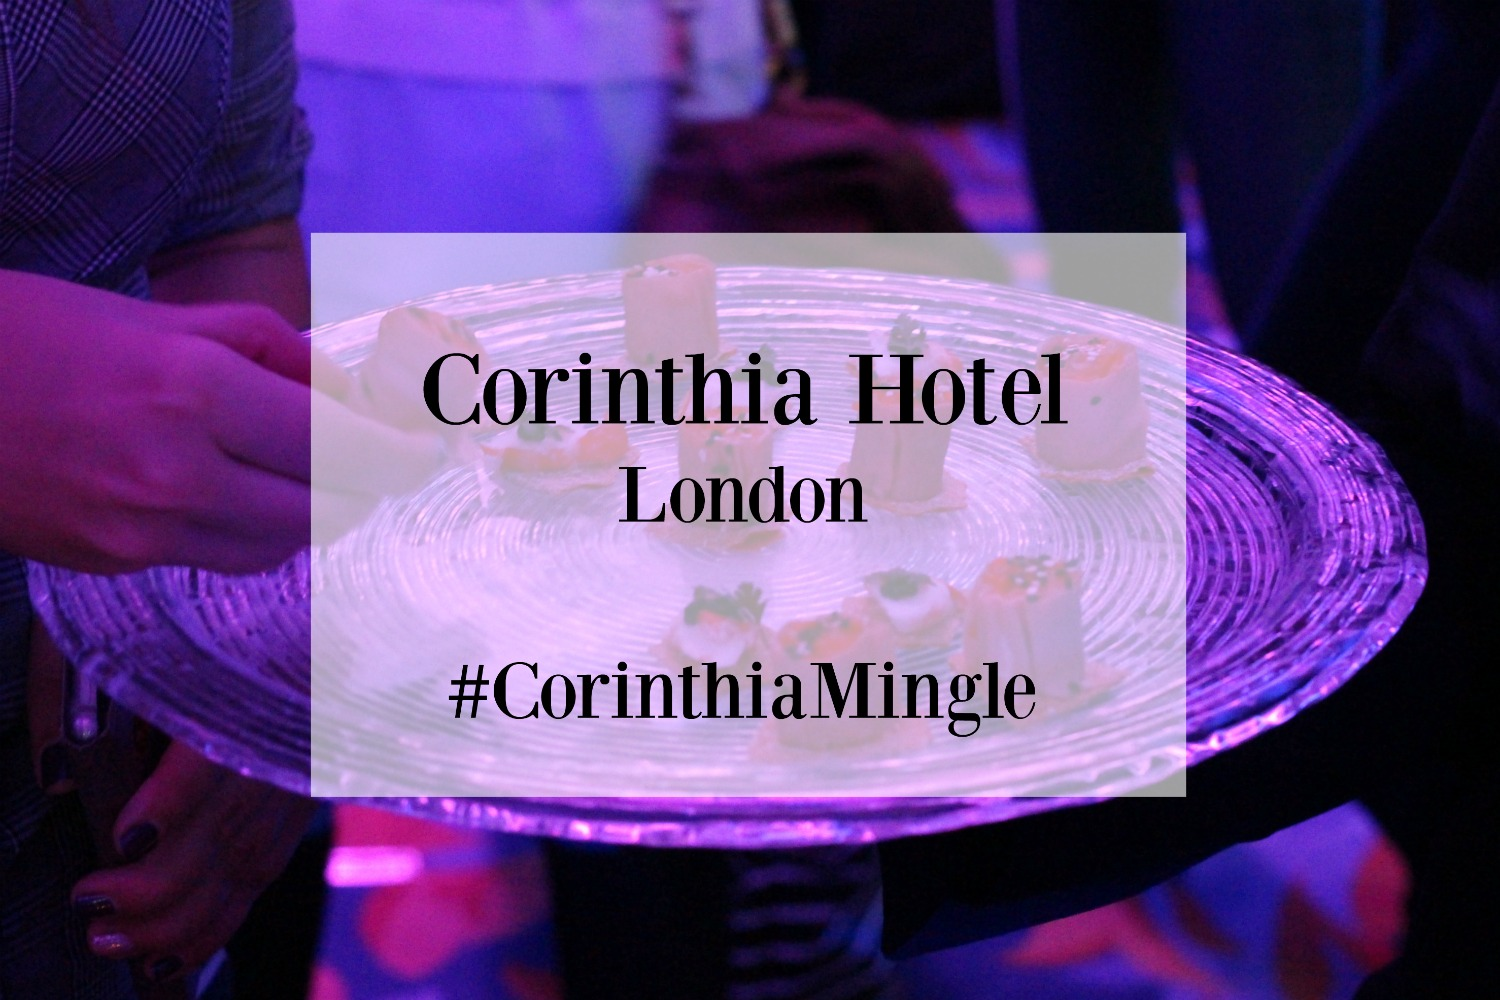 Last night I attended a fabulous mingle in aid of charity. It was hosted by Traverse in collaboration with the beautiful 5-star Corinthia Hotel London.